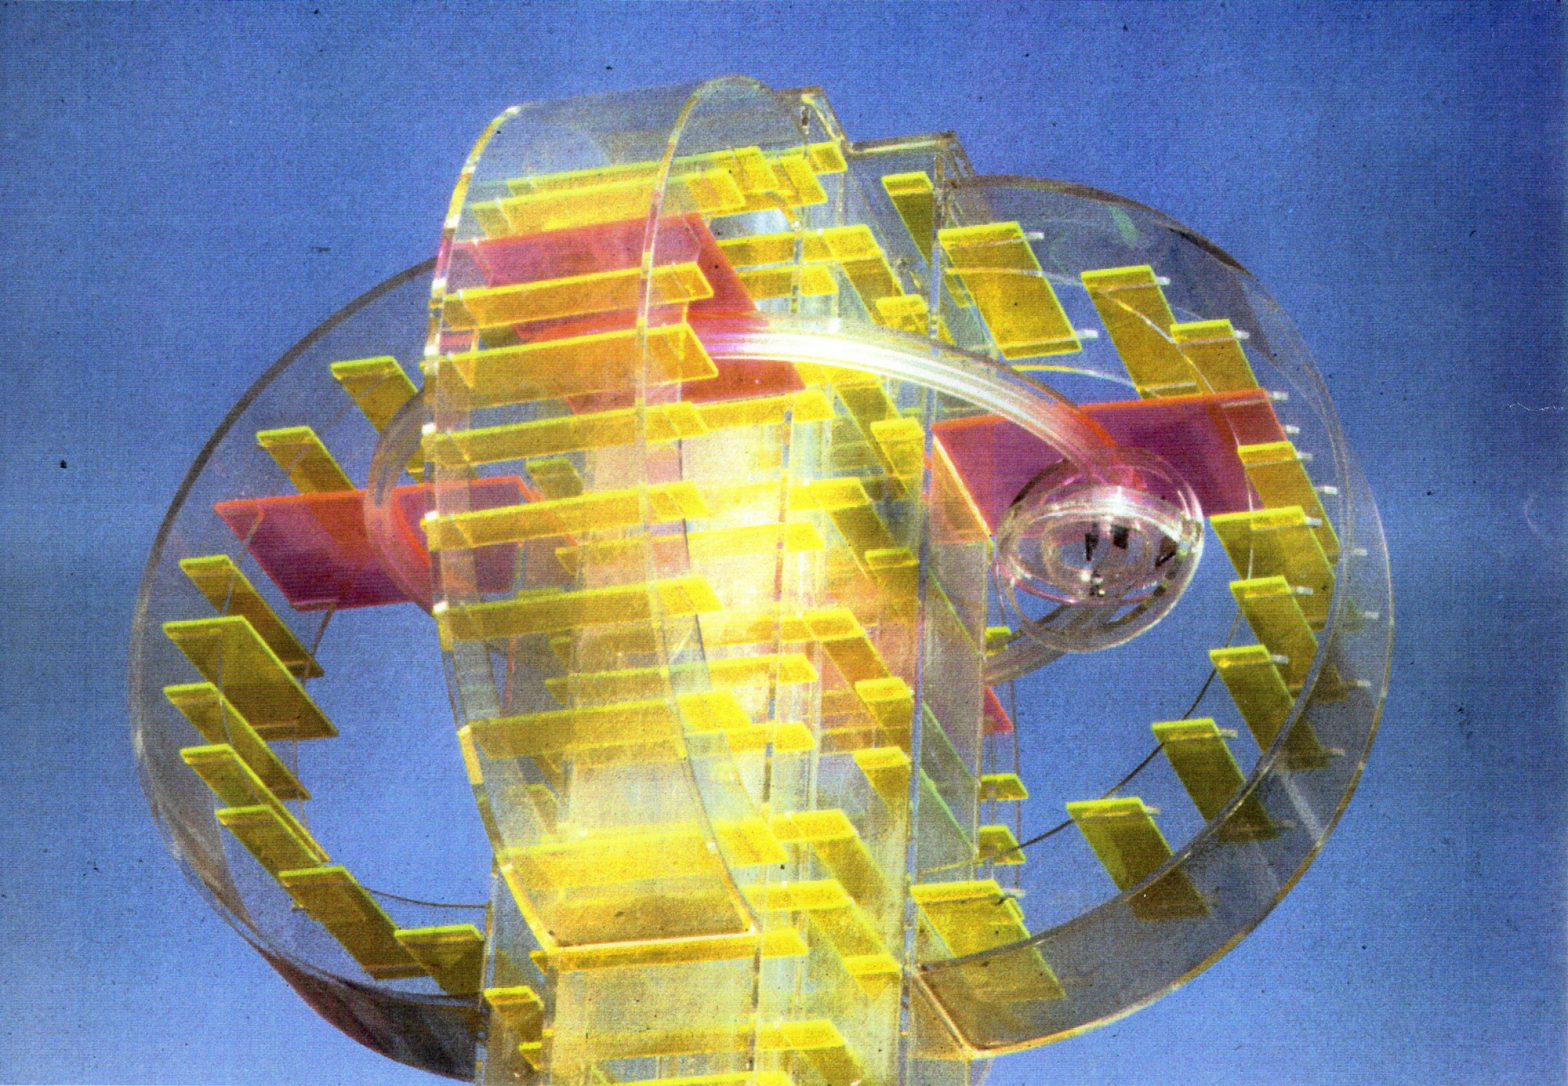 Column made from transparent plexi-glass. Inside bright yellow boards in steady arrangement.